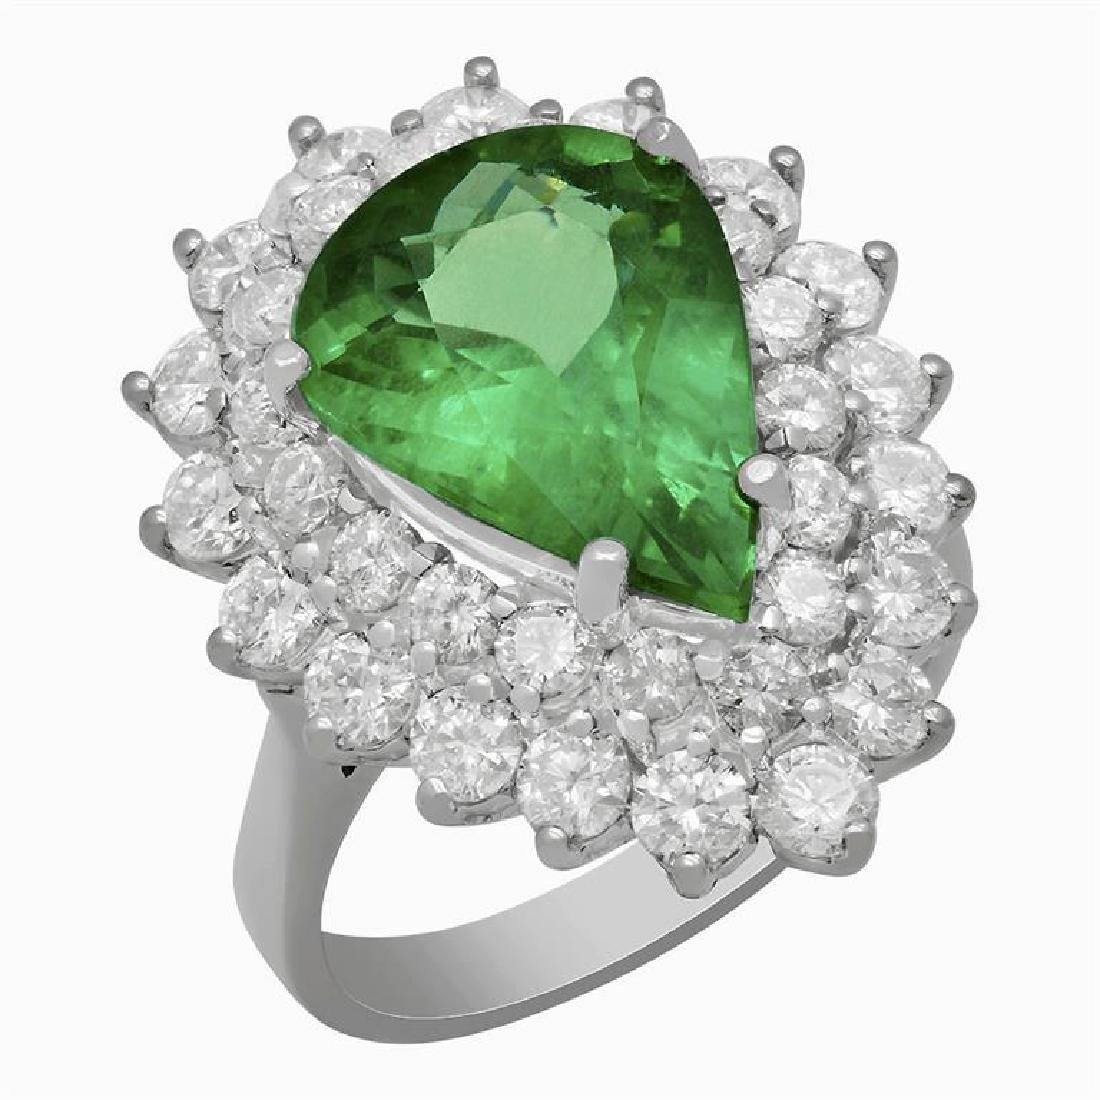 14k White Gold 4.92ct Emerald 2.66ct Diamond Ring